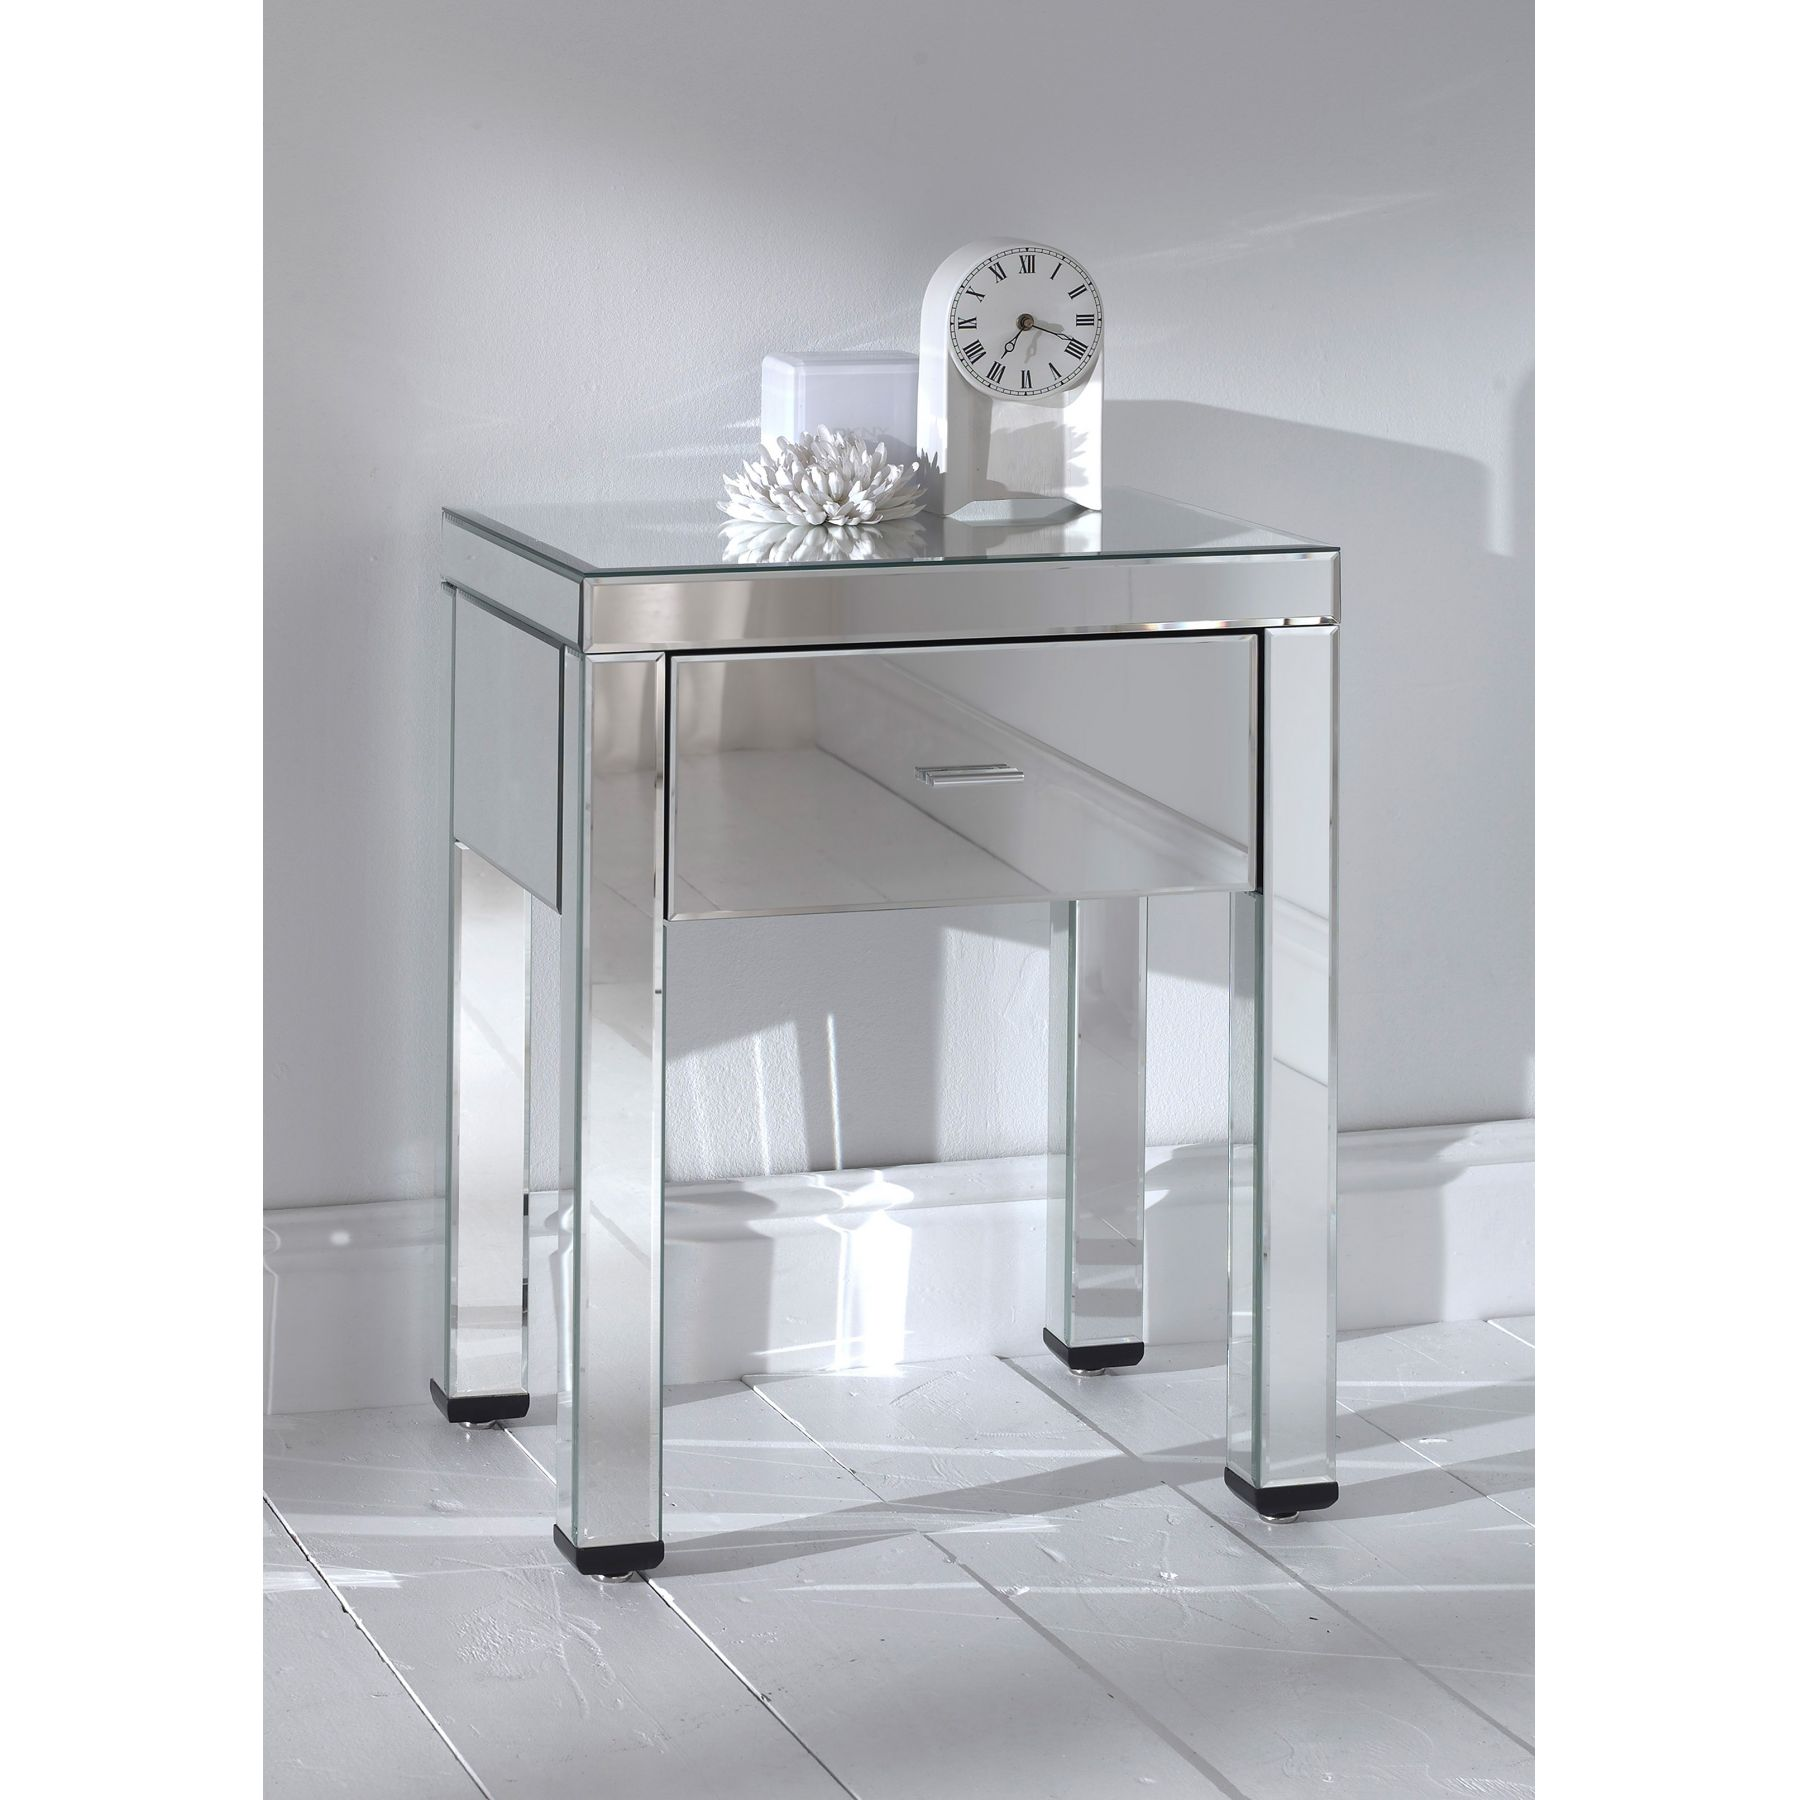 accent tables table gold side silver mirror geometric mirrored coffee dining room mackenzie sofa next furniture pedestal glass with drawer full size sensational file cabinet rails